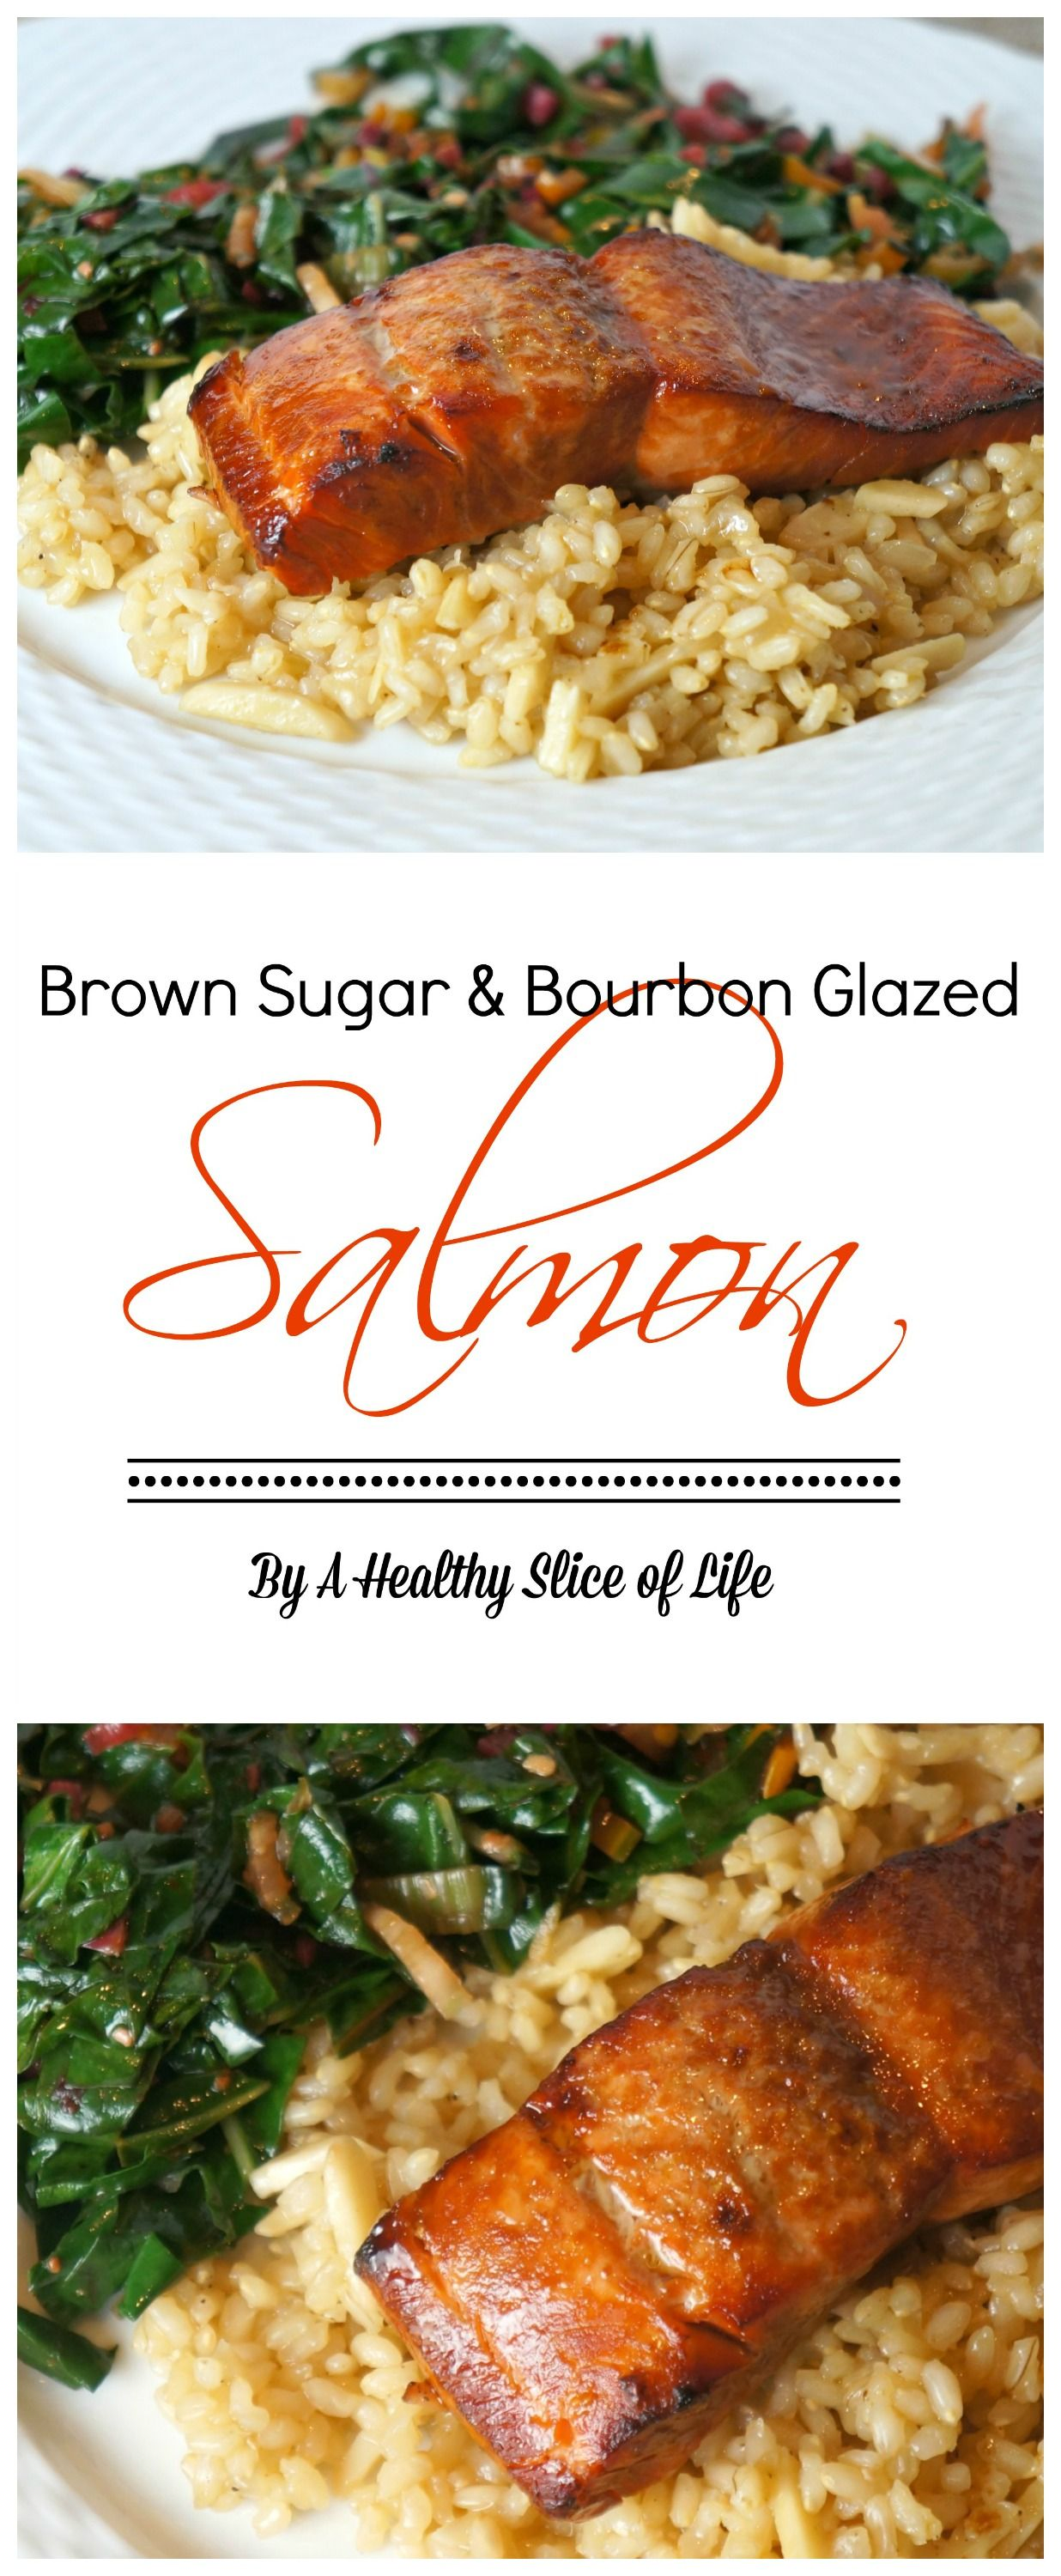 brown sugar and bourbon glazed salmon- quick and foolproof – delicious!